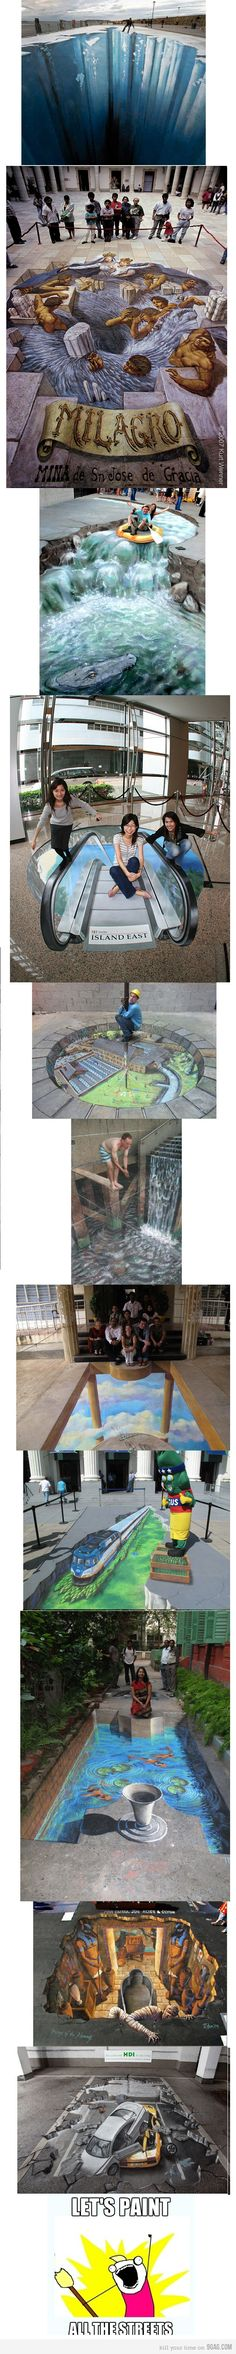 3D This is amazing to me. The artists who do this have an incredible talent.